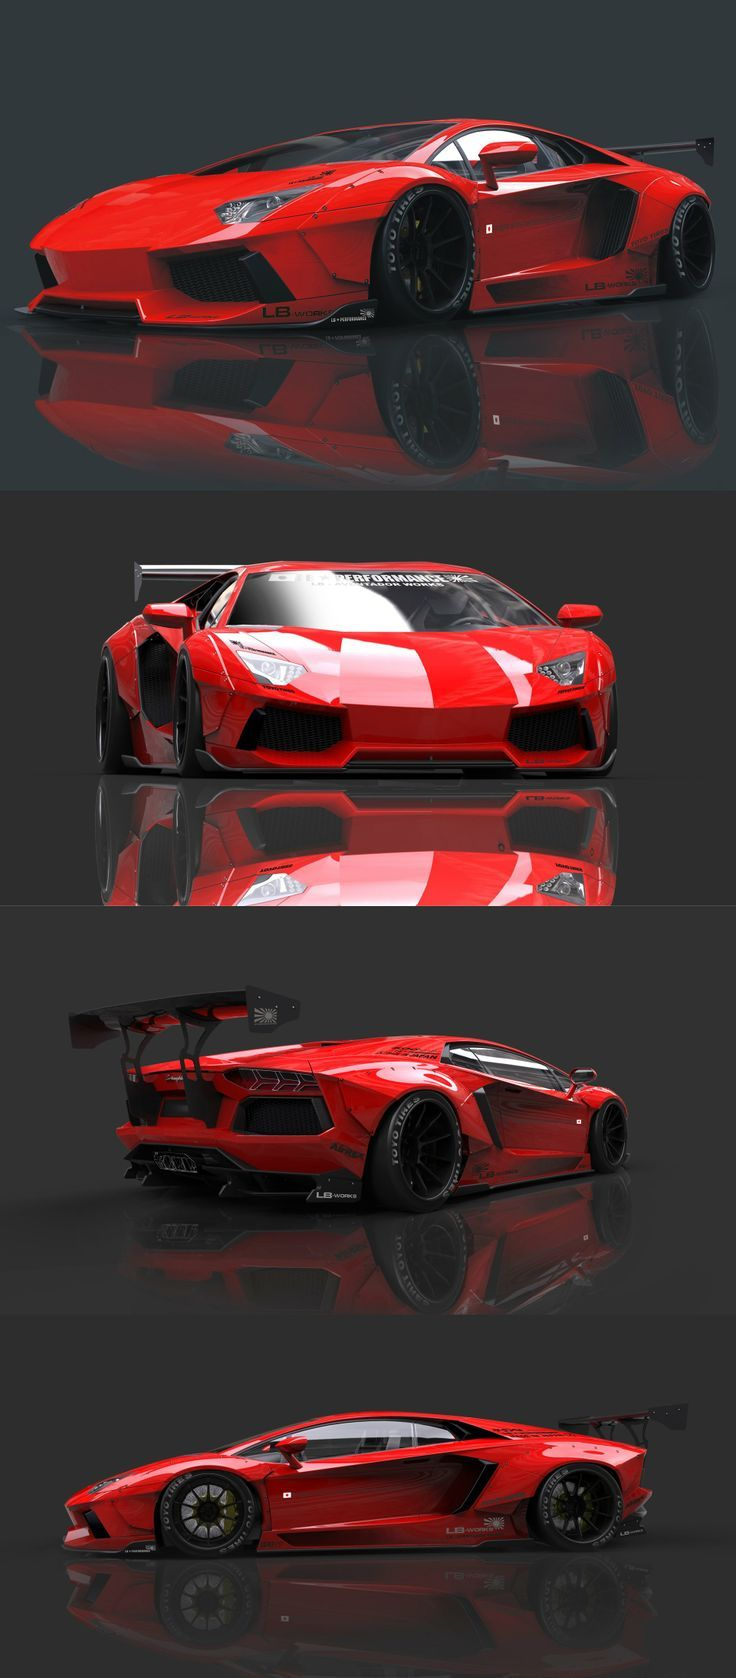 Would you drive a red #Lamborghini Aventador? Check it out - http://www.internetcashsniper.com/elitetrader